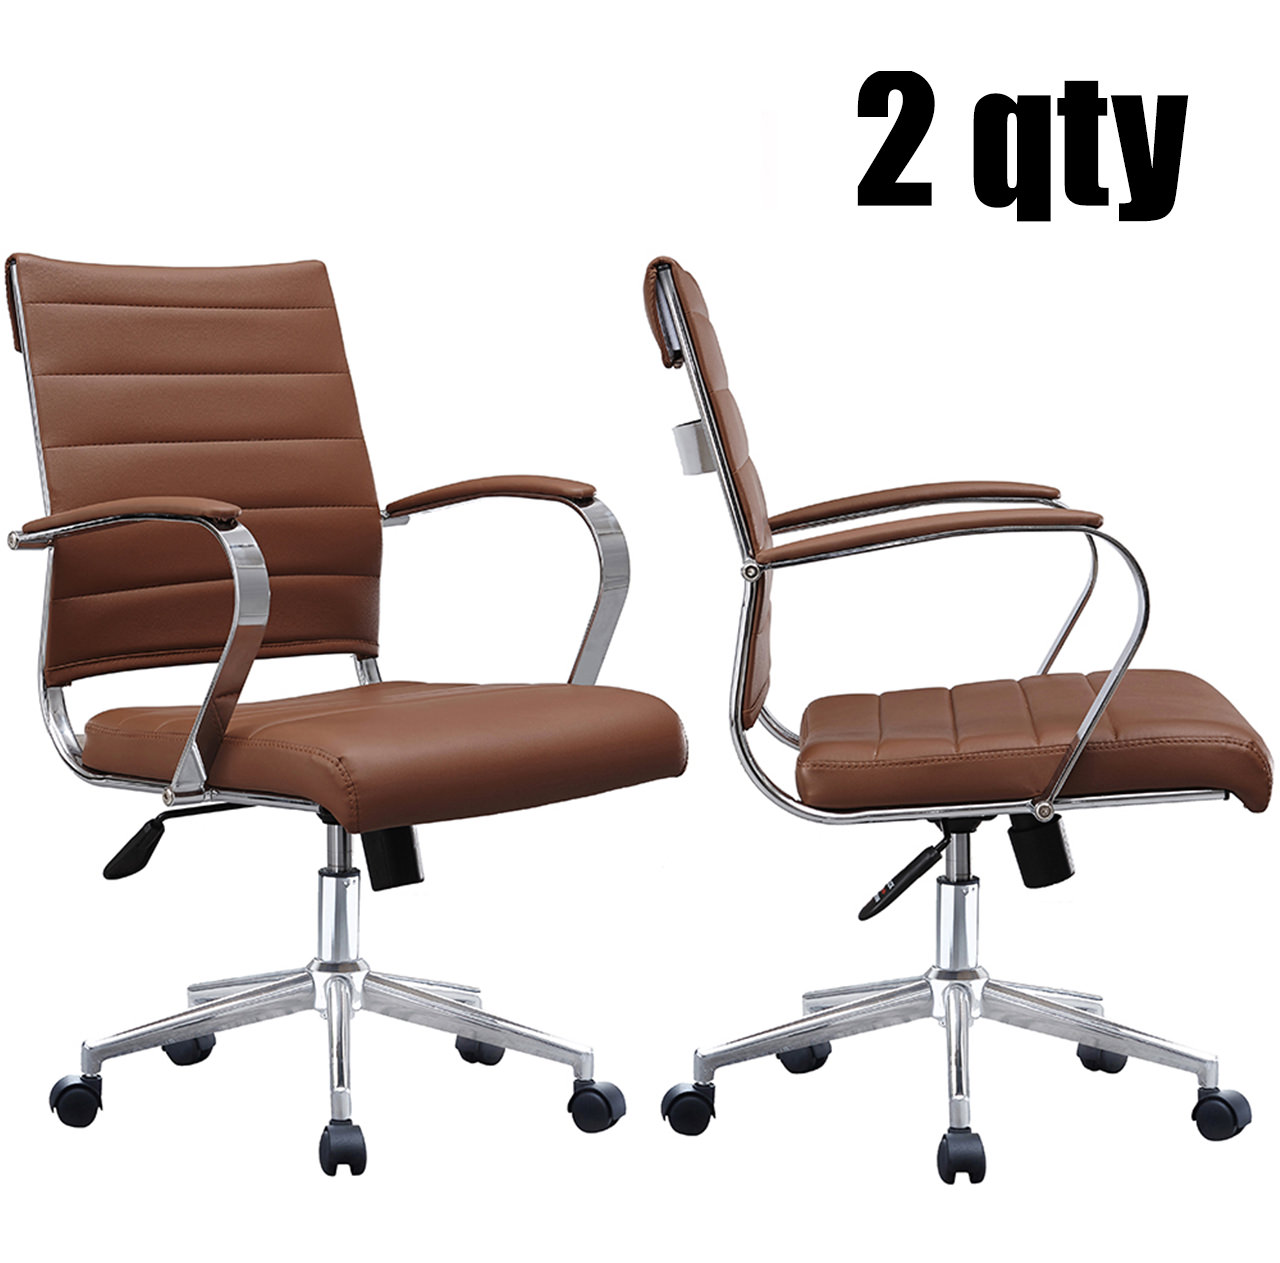 2xhome Set of Two - Black- Modern Mid Back Ribbed PU Leather Swivel Tilt Adjustable Chair Designer Boss Executive Management Manager Office Conference Room Work Task Computer …